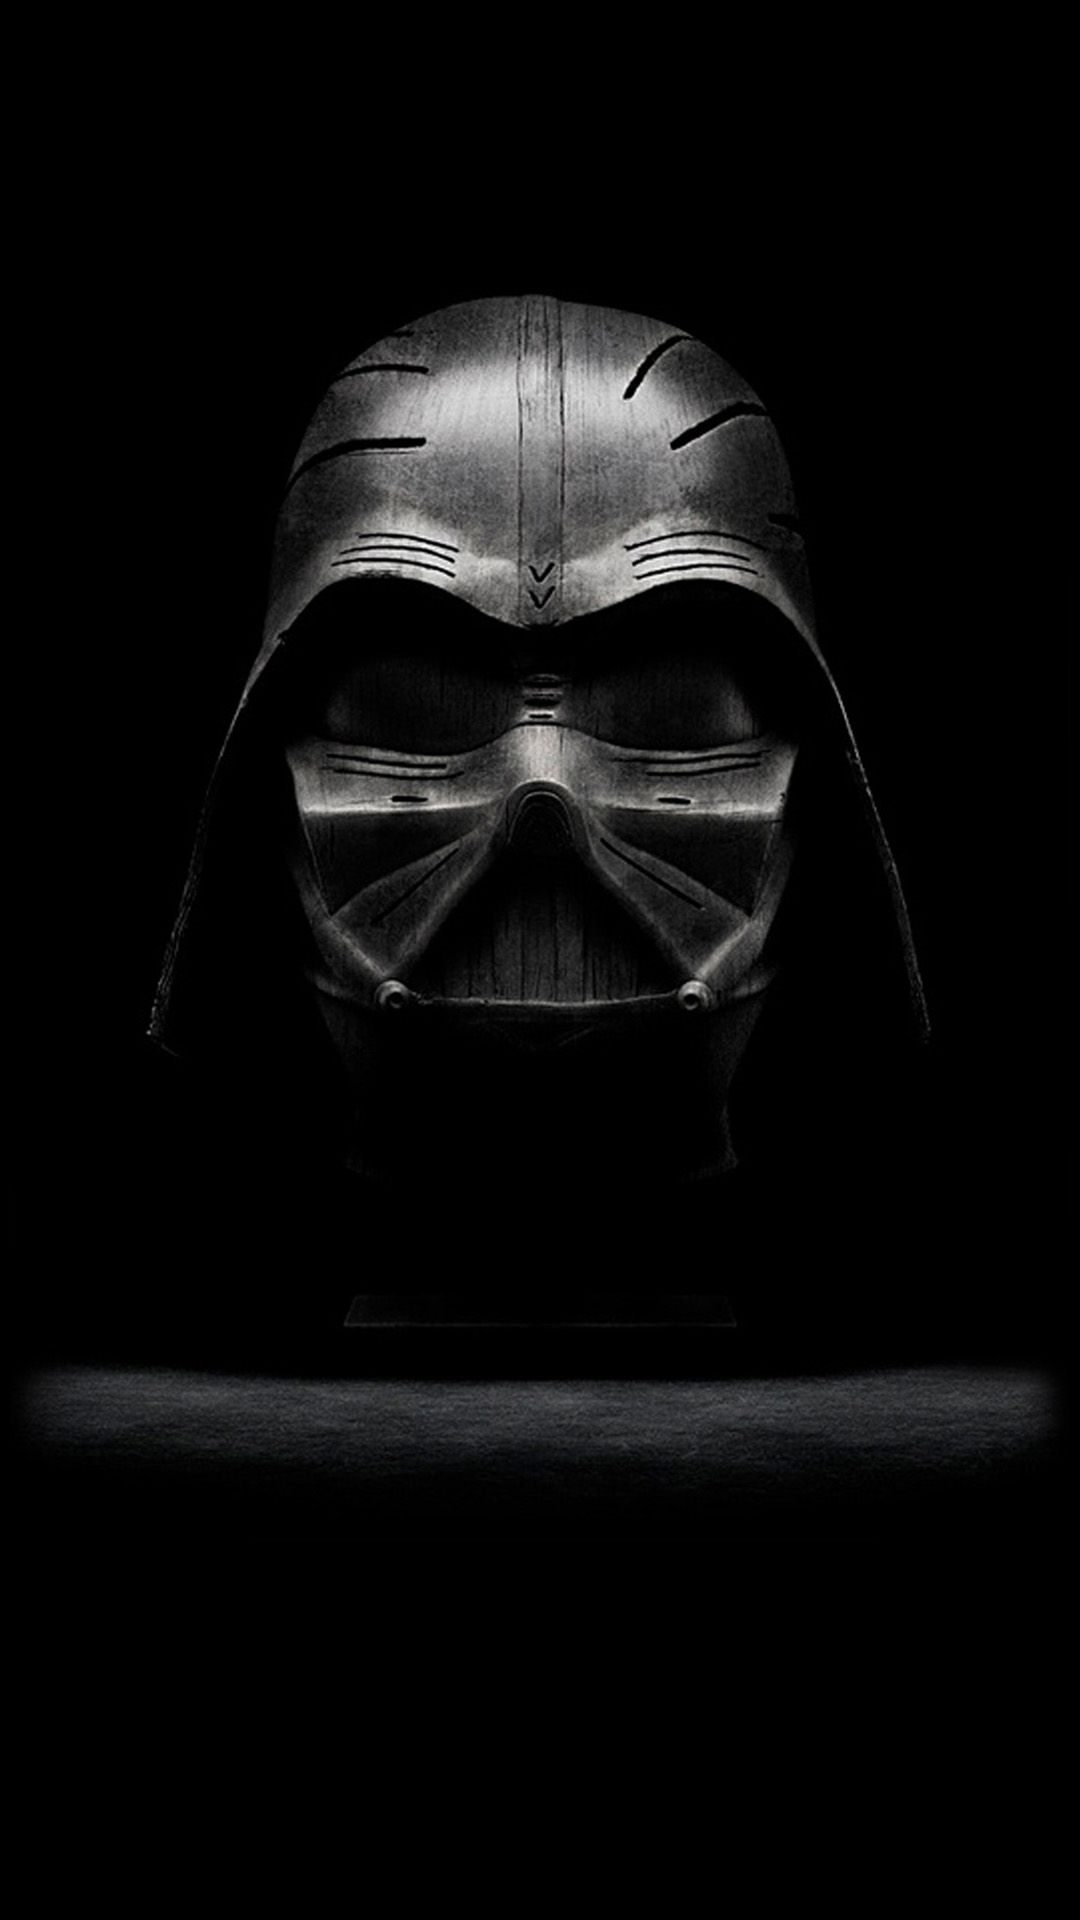 Darth Vader Wallpaper 1920 1080